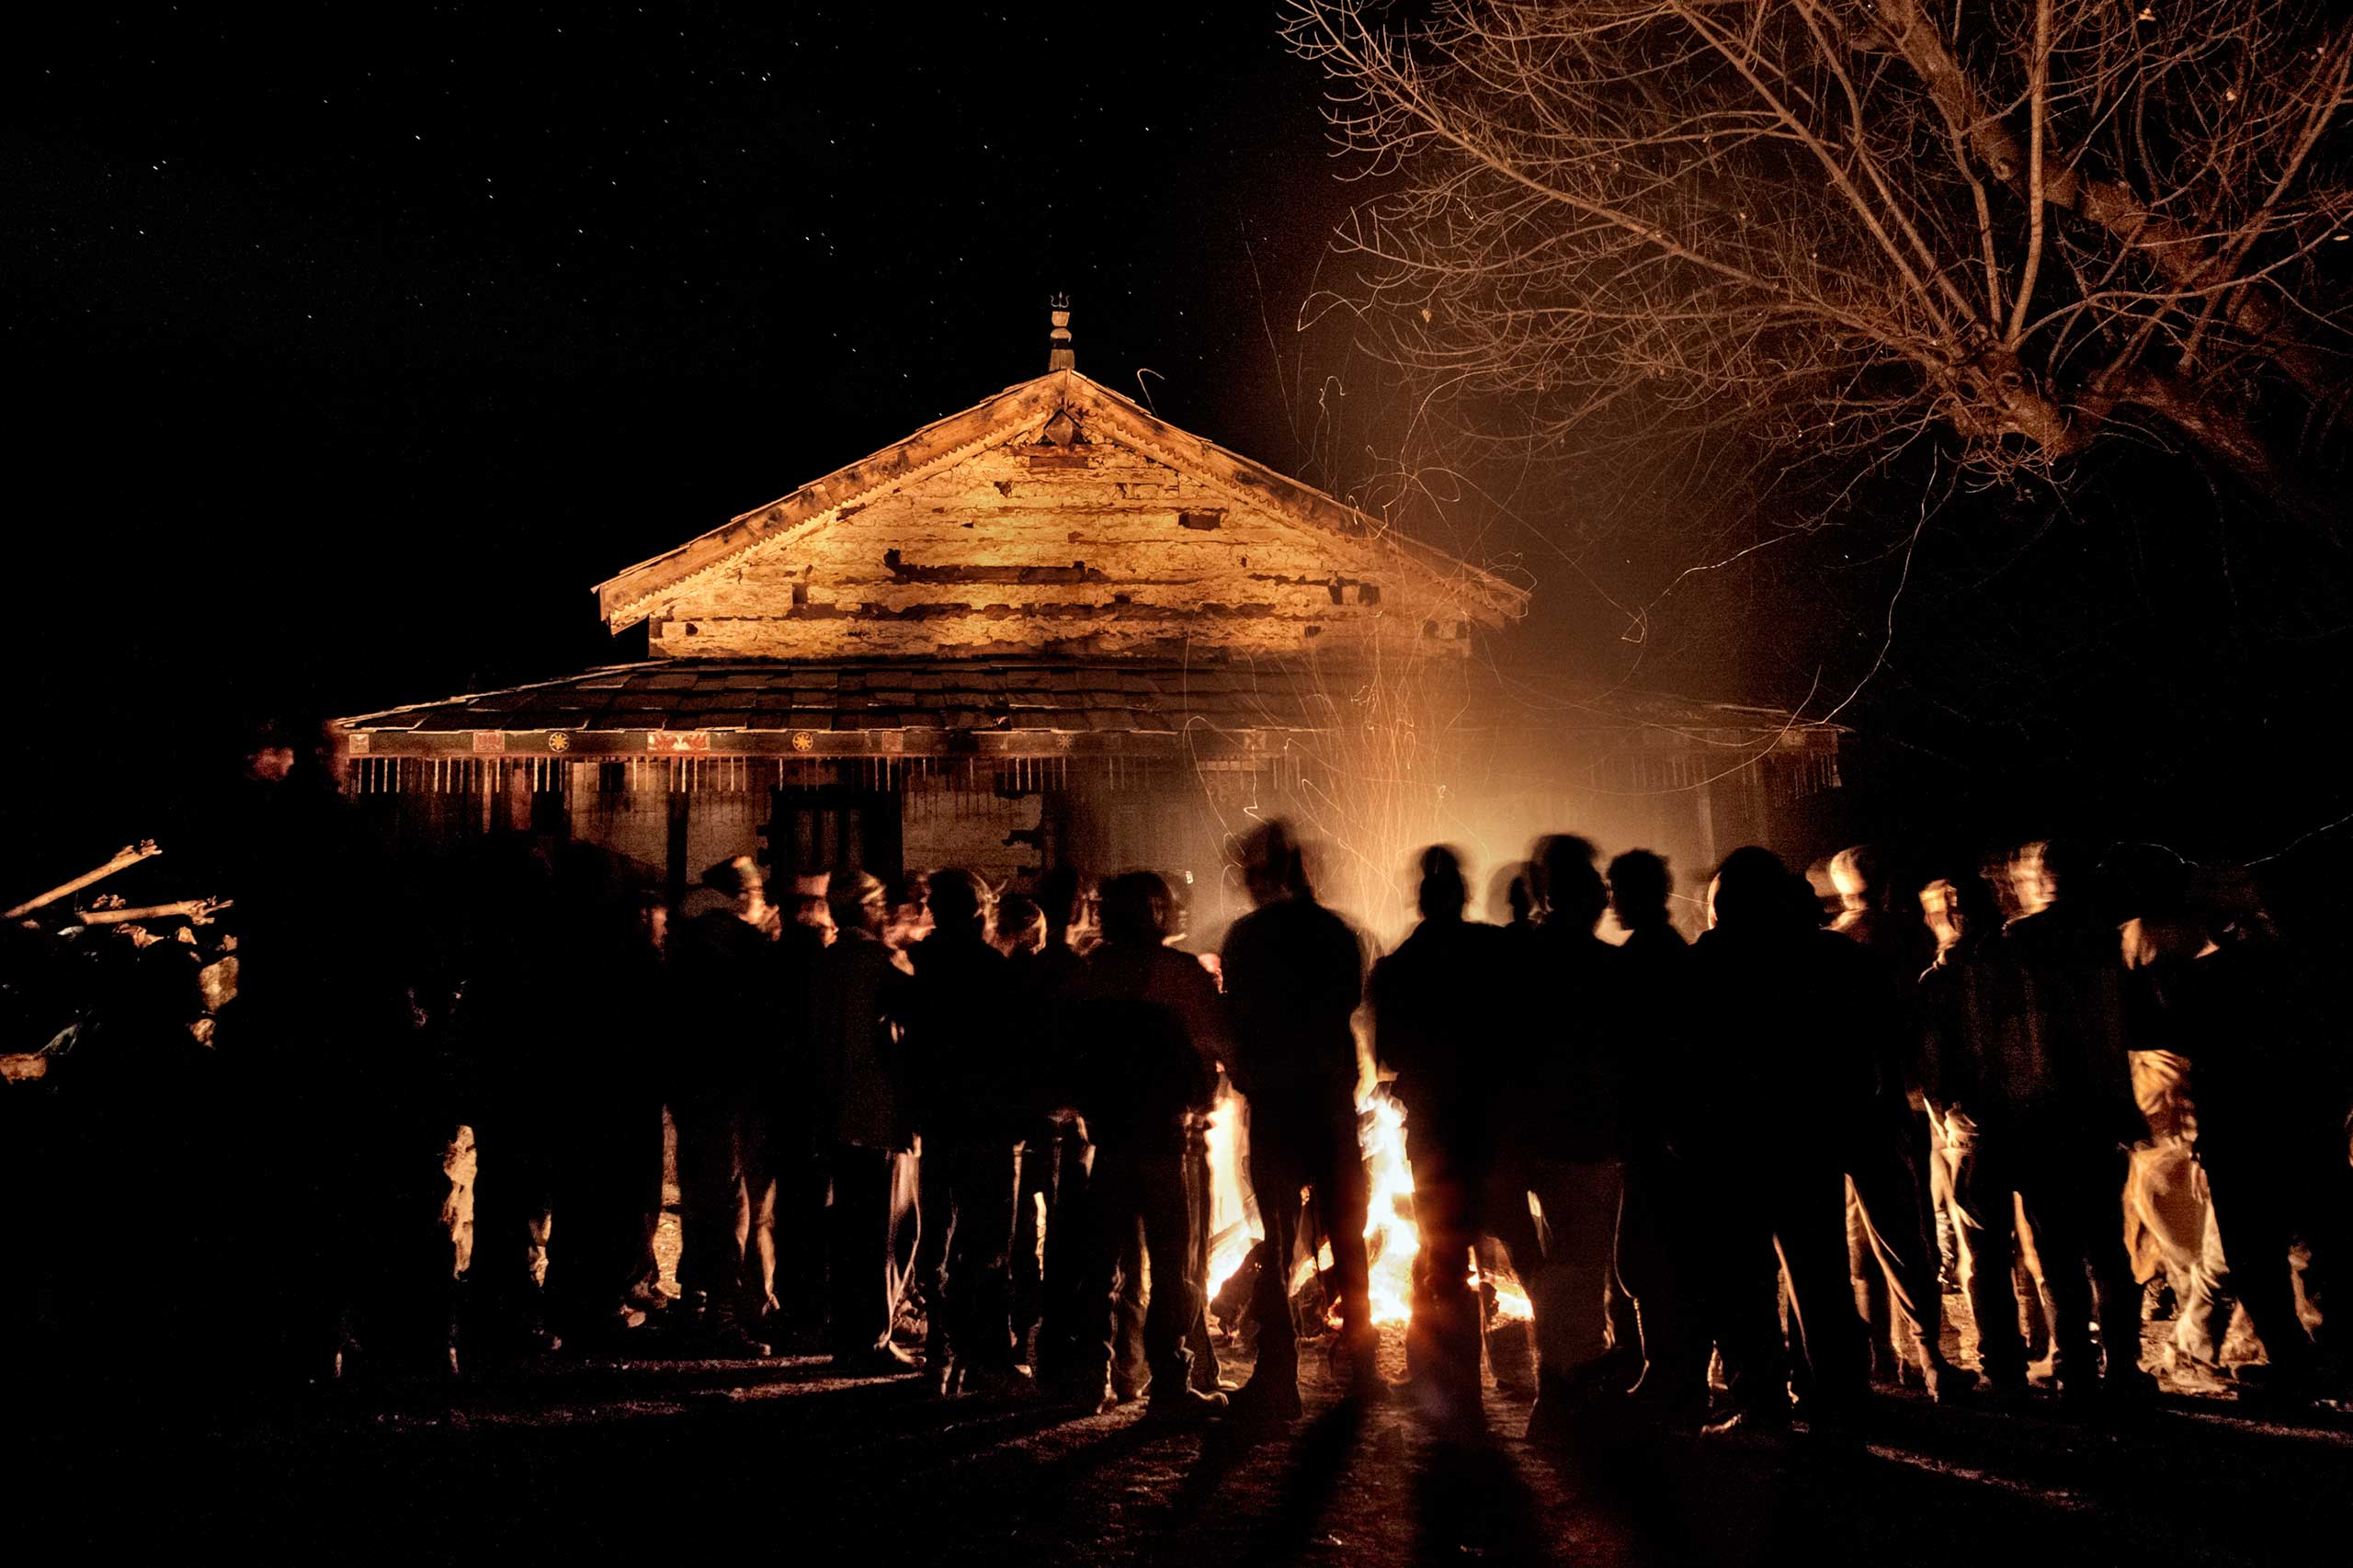 Villagers gather around a huge bonfire in front of a temple in the village in Dec. 2011.